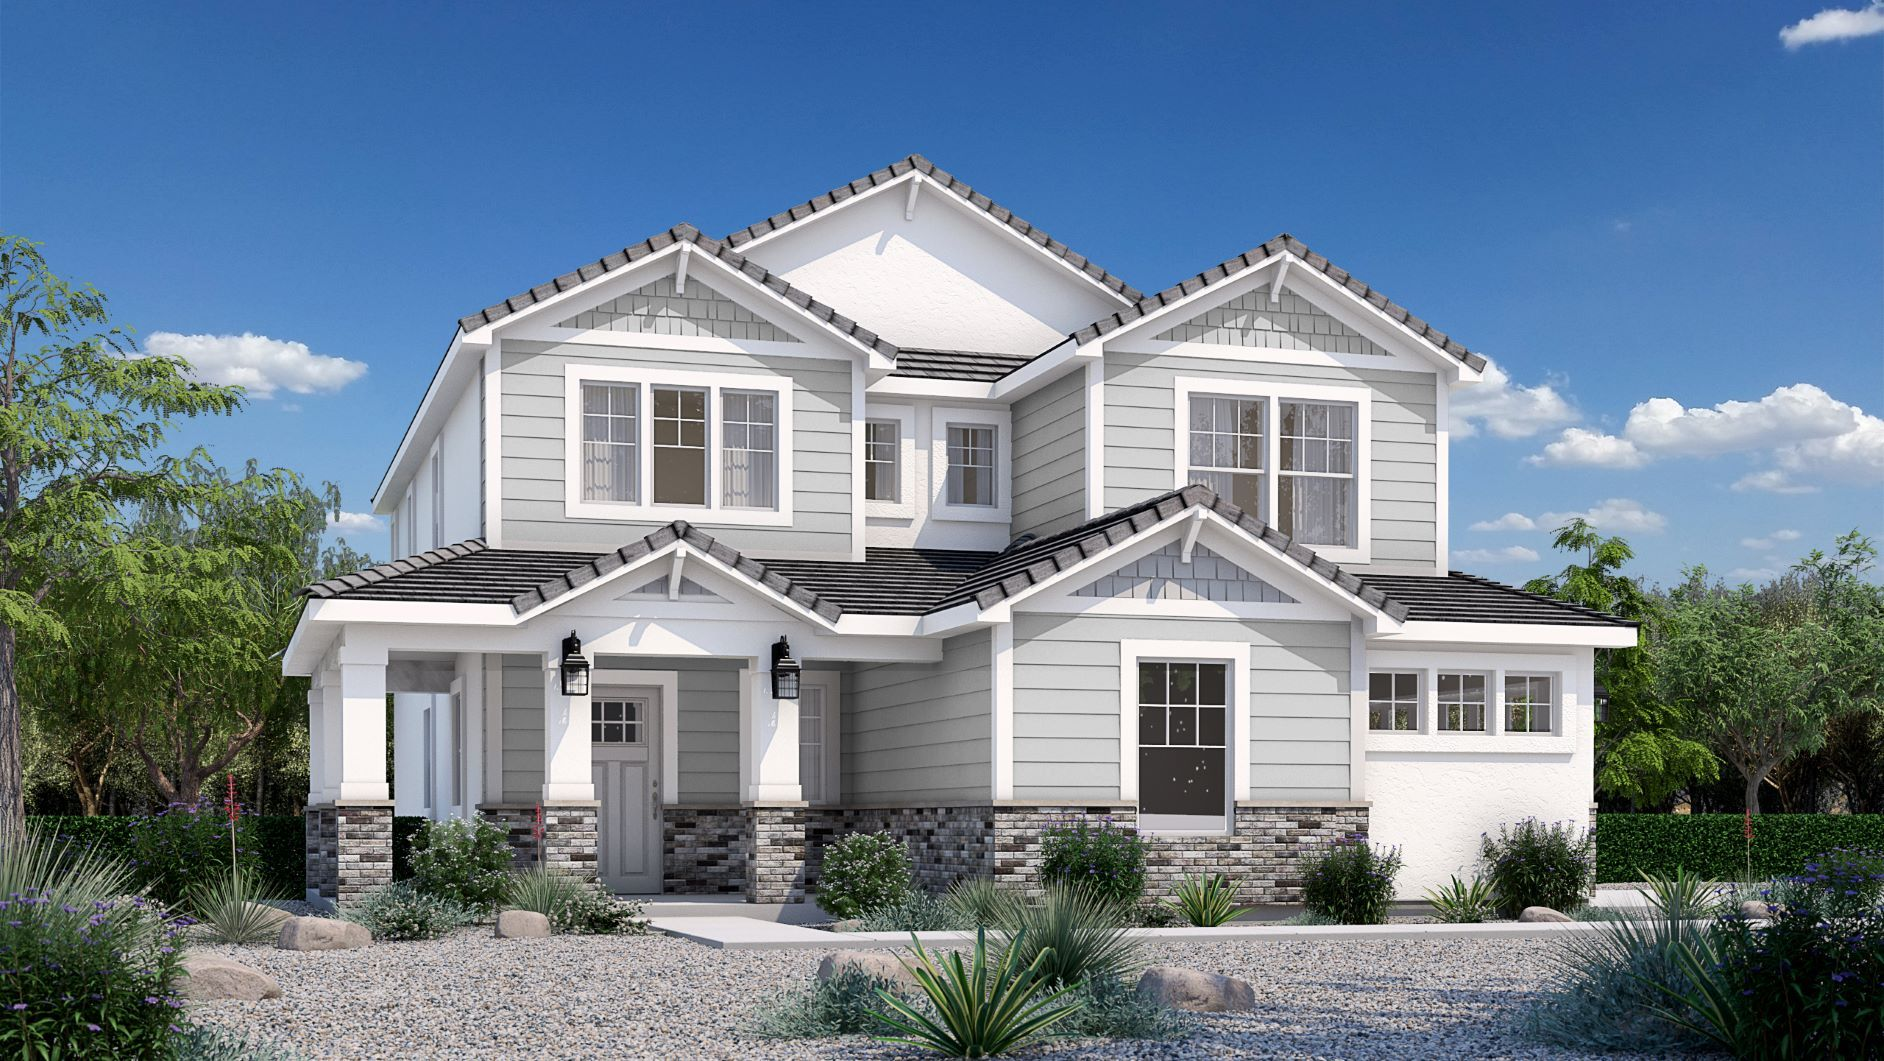 Exterior featured in the Mojave (SOG) By Visionary Homes in St. George, UT